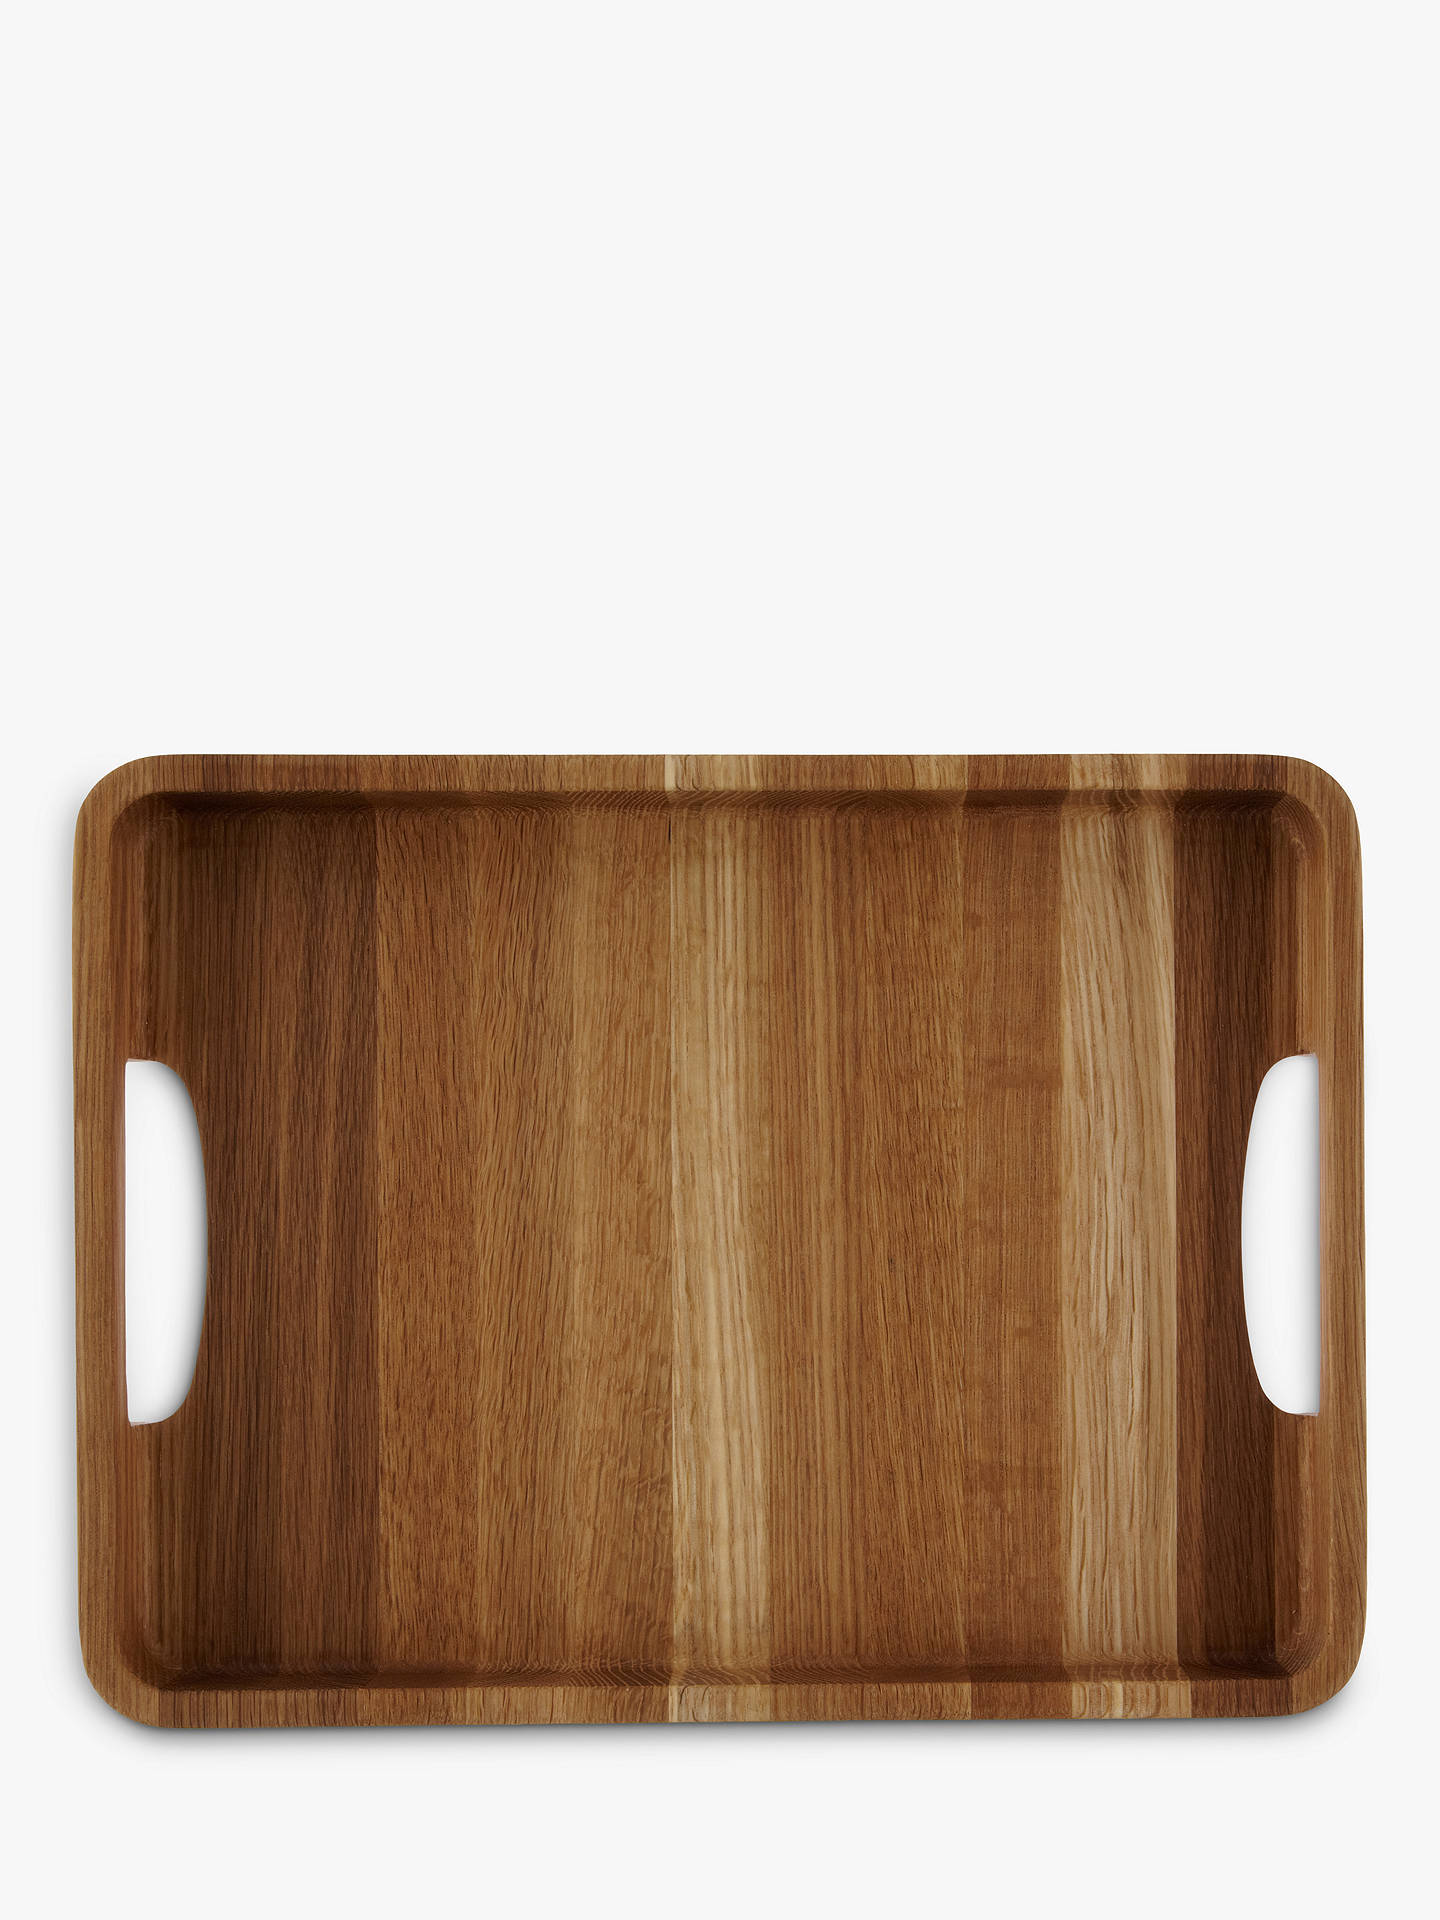 BuyJohn Lewis & Partners Oak Wood Tray, H4 x L26 x W34cm Online at johnlewis.com